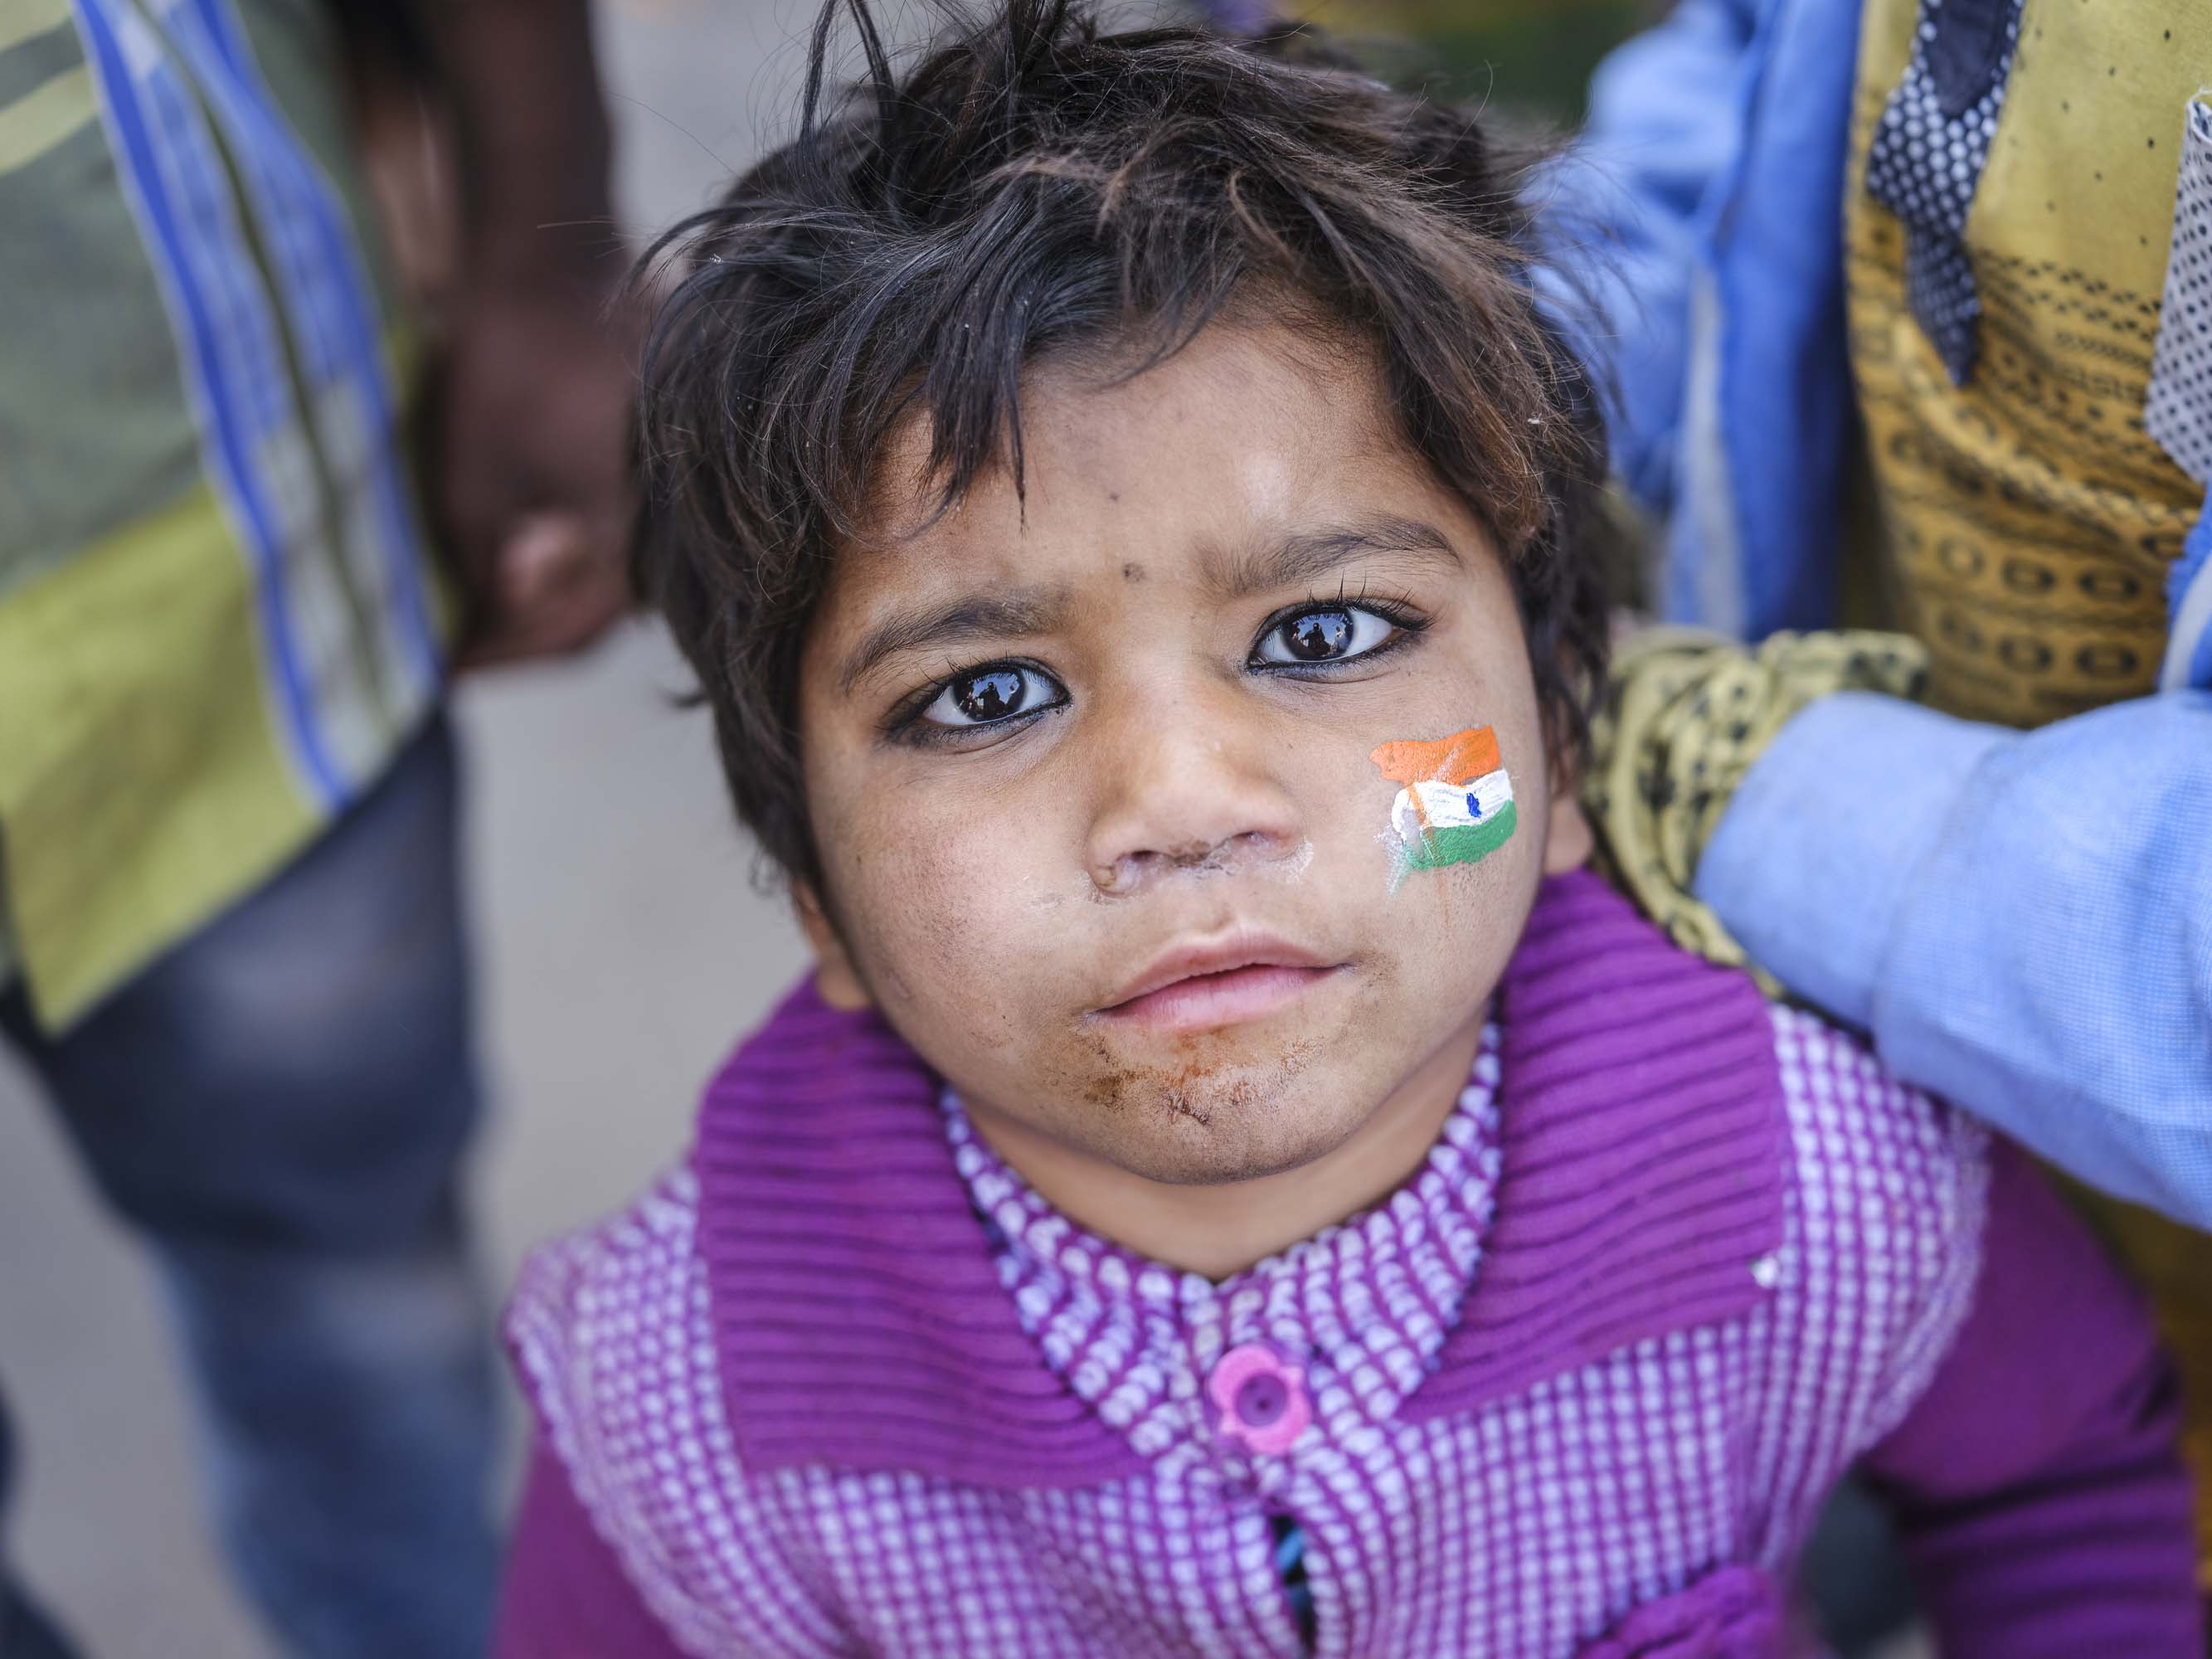 national day little girl with a flag India New Delhi street photography Photographer Jose Jeuland FUJIFILM GFX50R travel